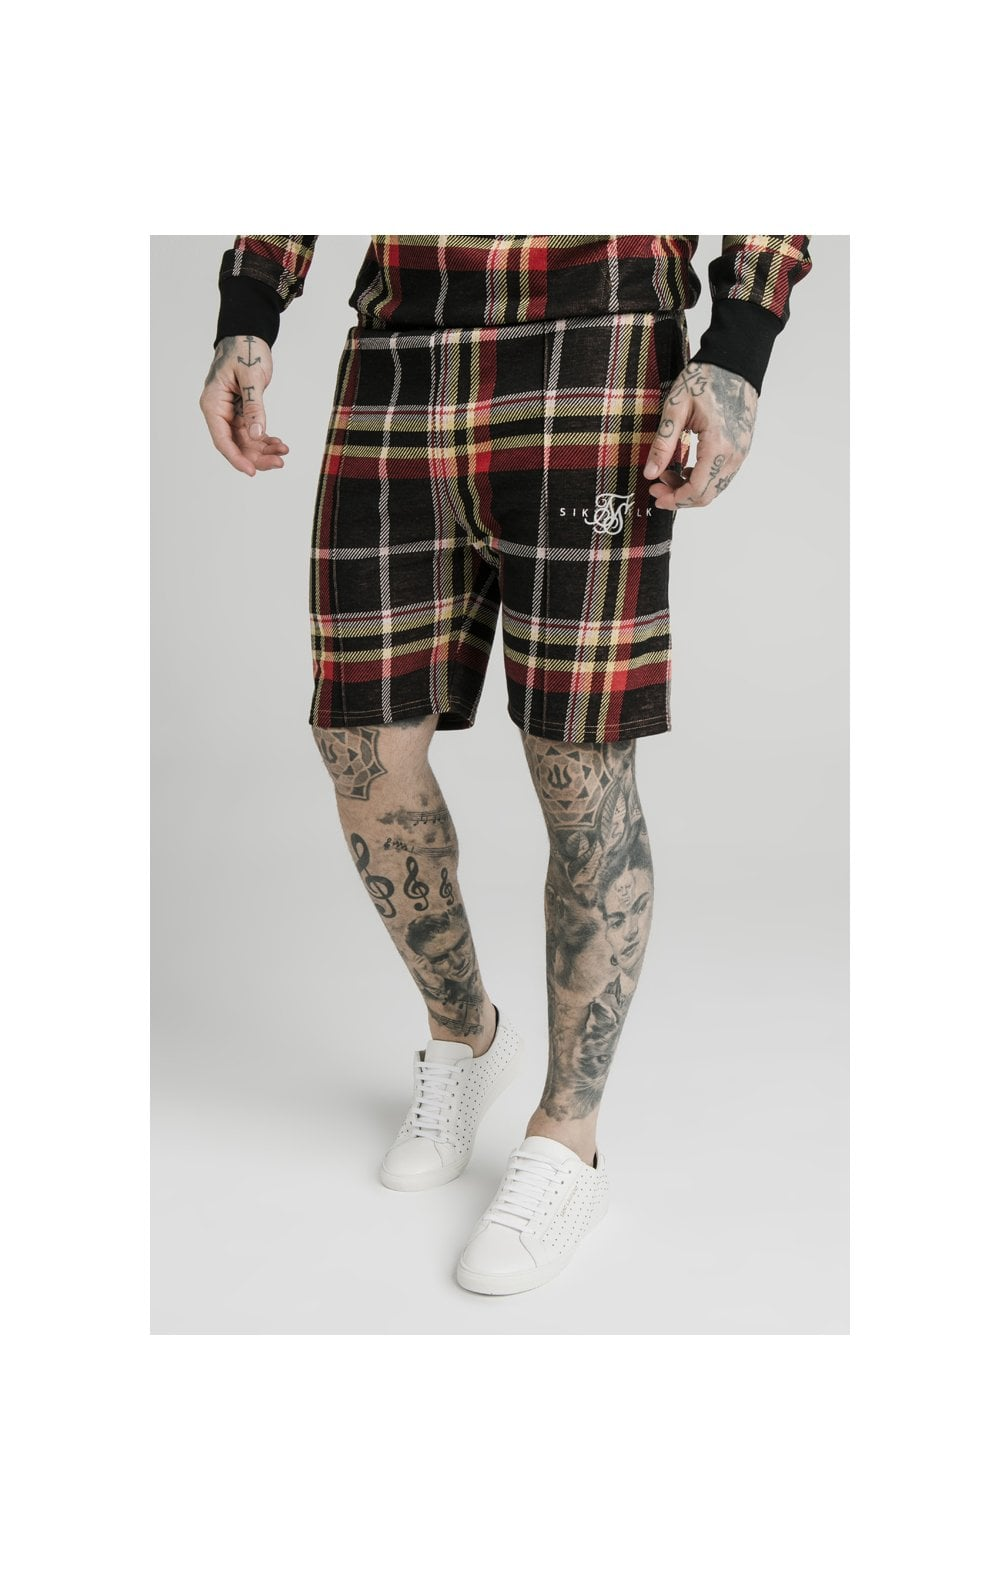 SikSilk Pleated Smart Shorts - Multi Grain Check MEN SIZES BOTTOM: Extra Small 28in